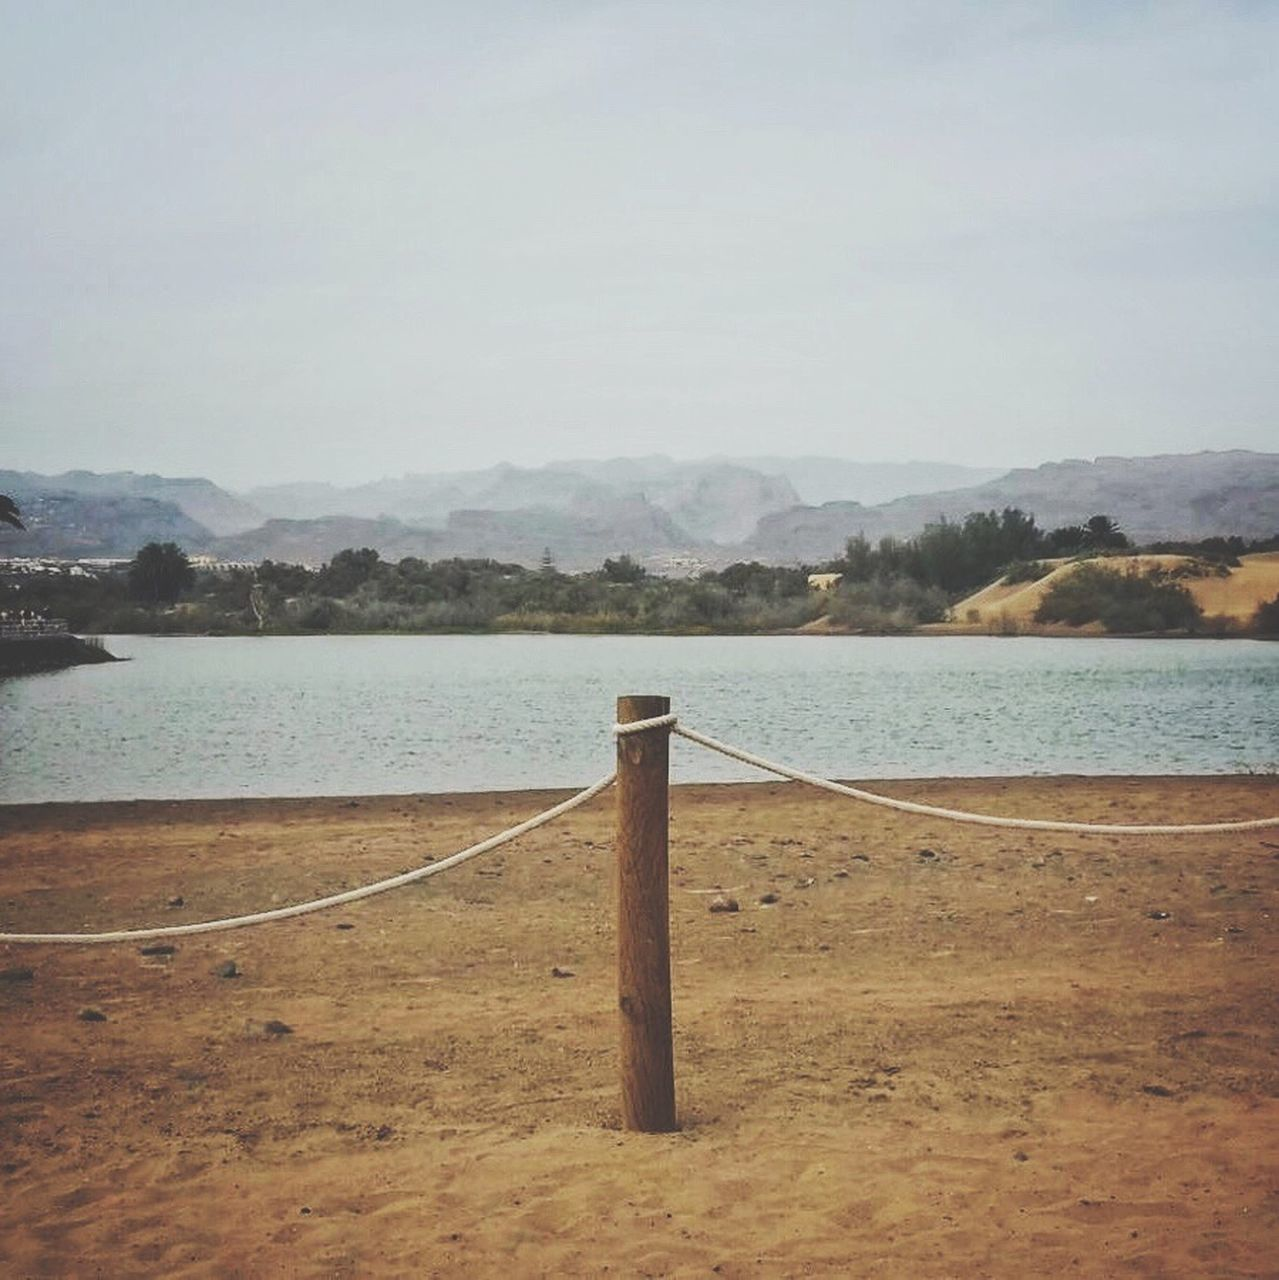 water, scenics, mountain, day, tranquility, sand, sea, tranquil scene, nature, beauty in nature, outdoors, sky, no people, beach